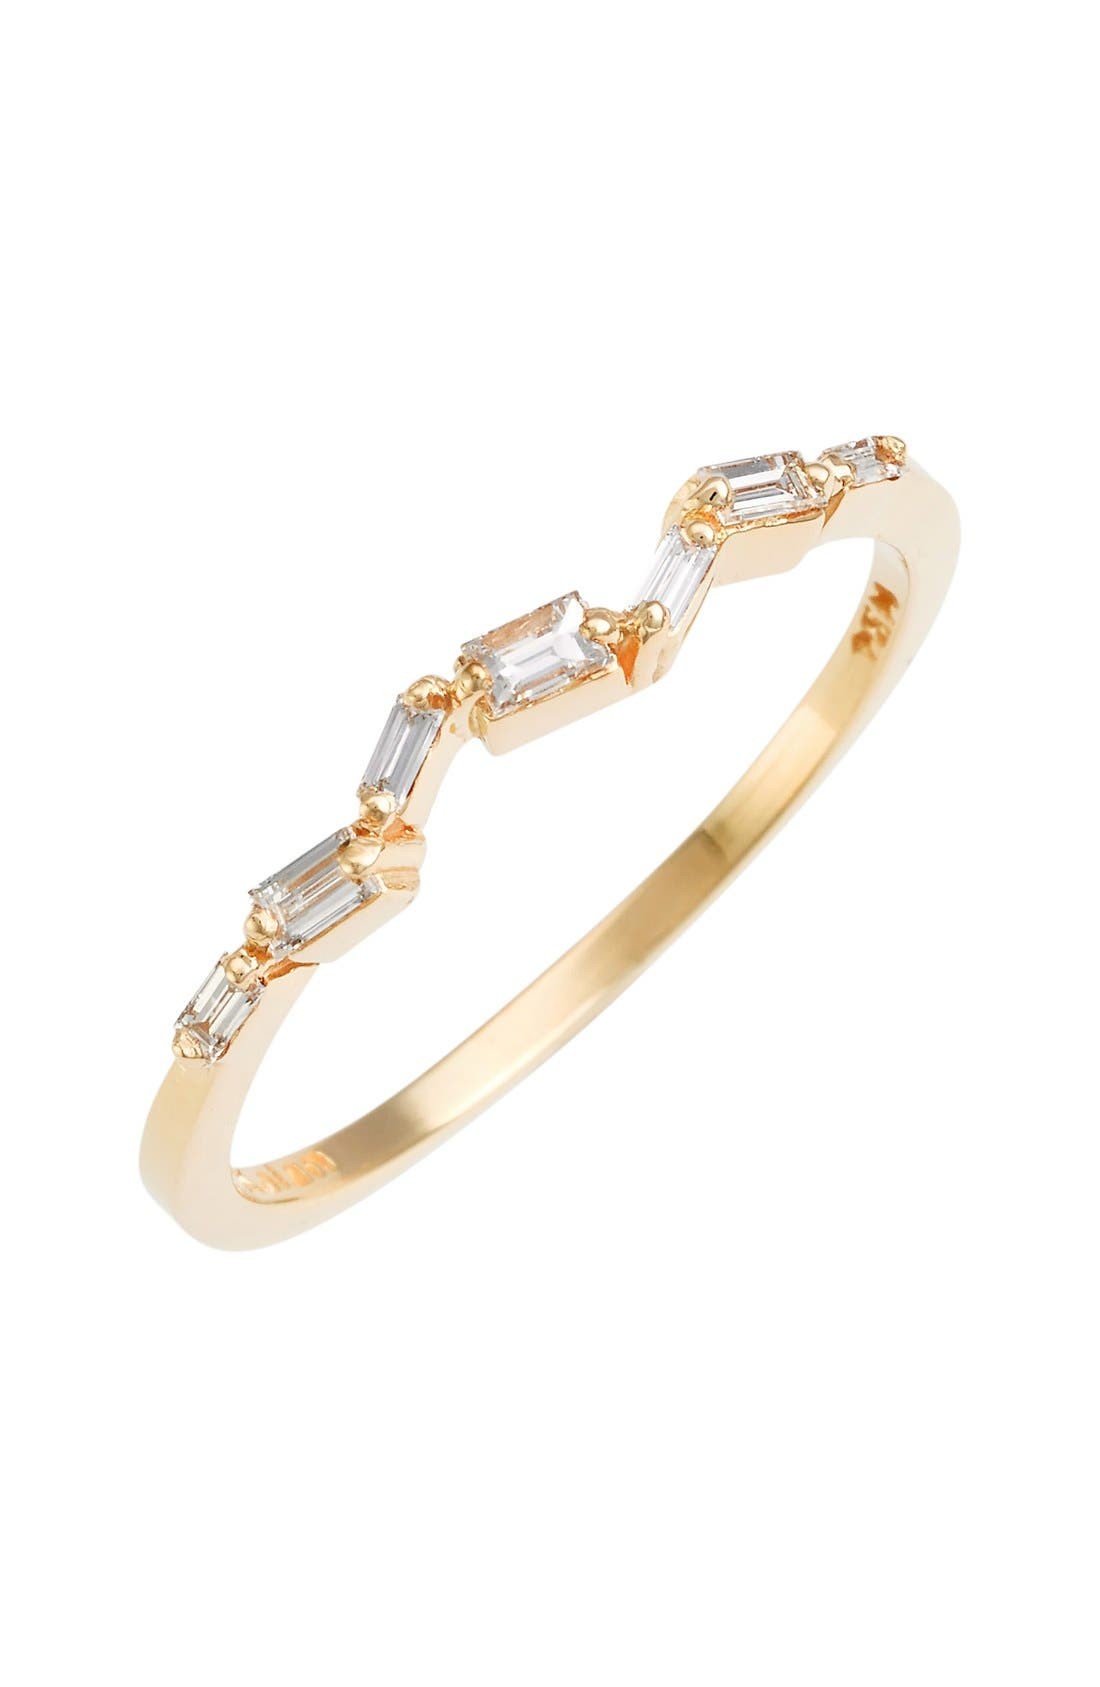 Main Image - Suzanne Kalan Thin Baguette Stacking Band Ring